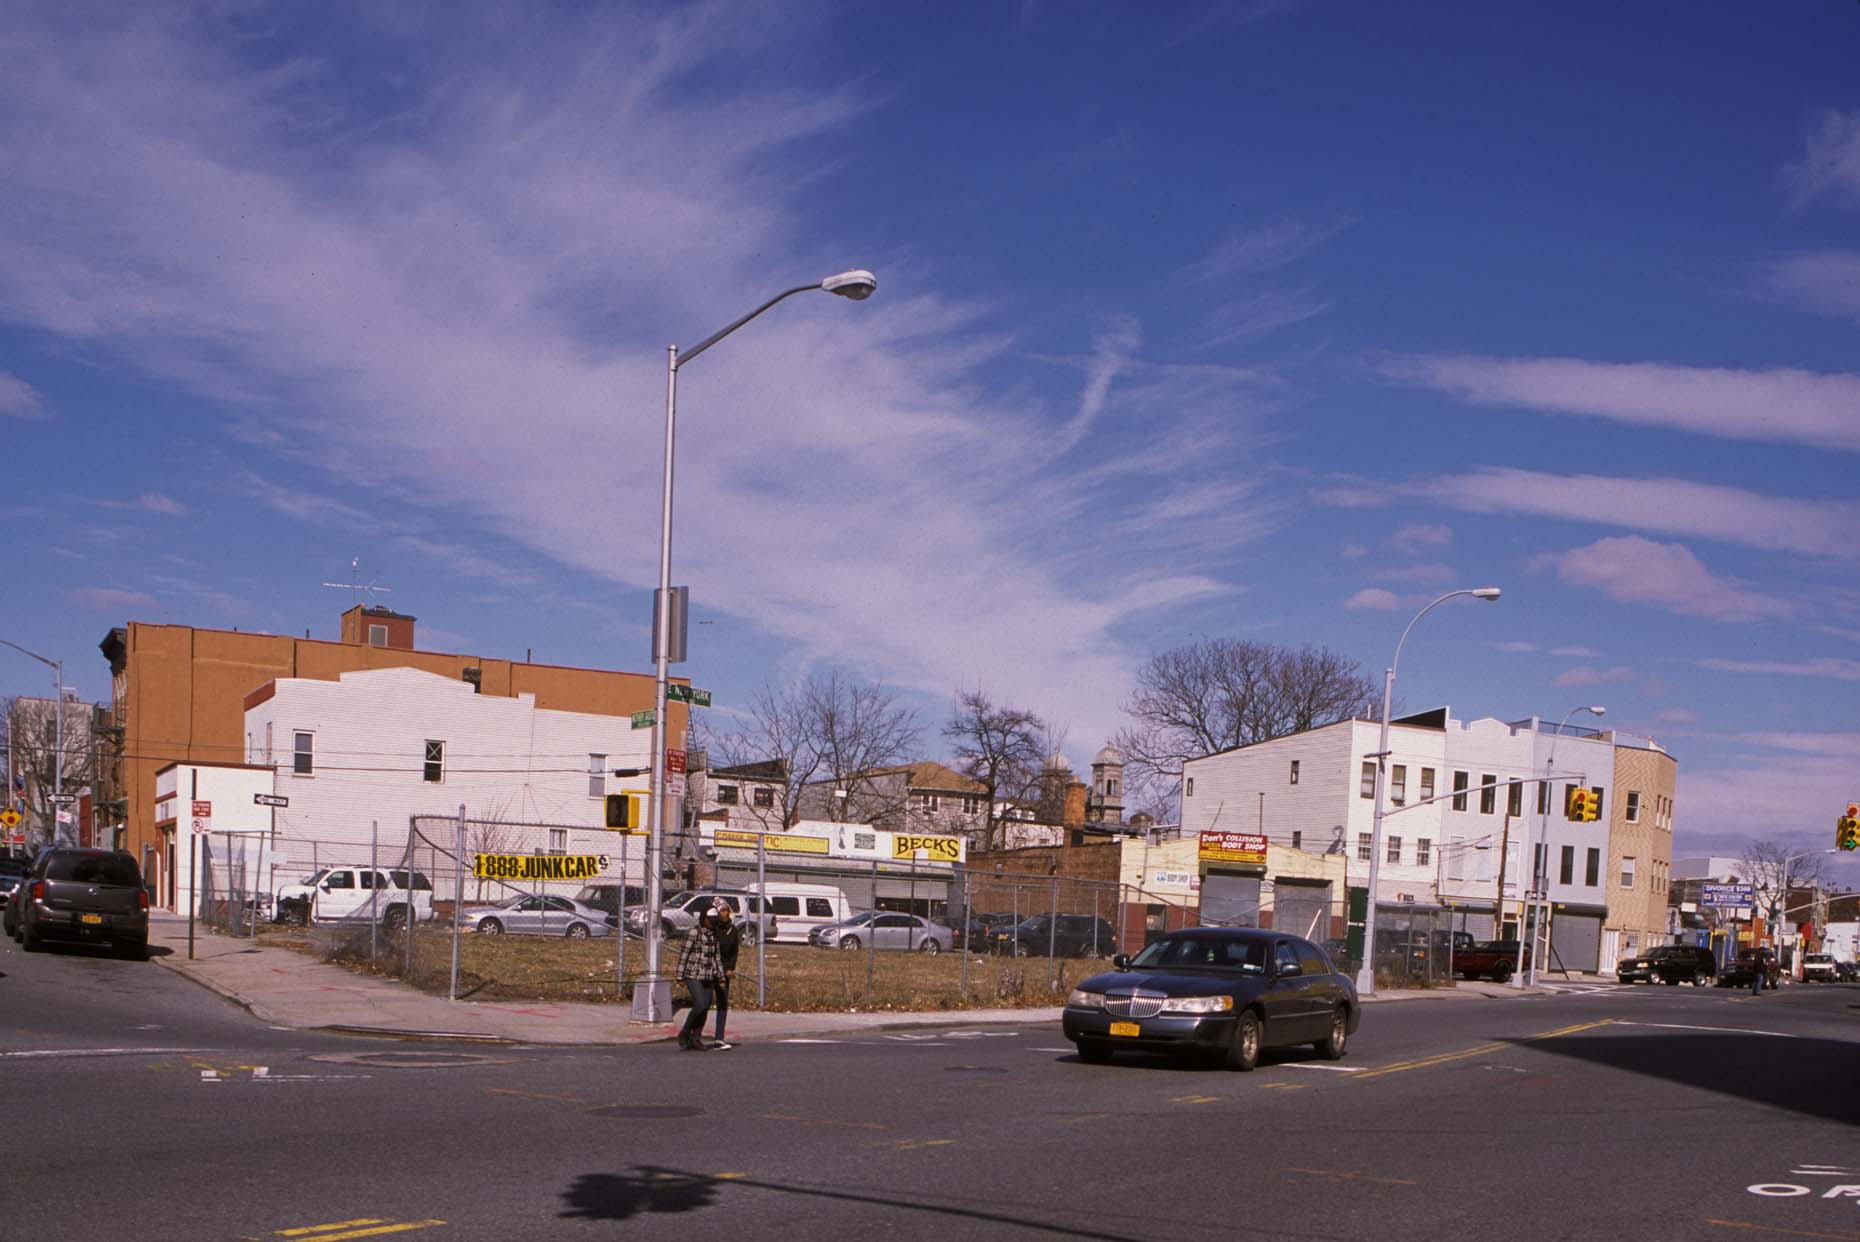 33_1613 East New York Ave-DUP2., Brooklyn, 2013 _.jpg